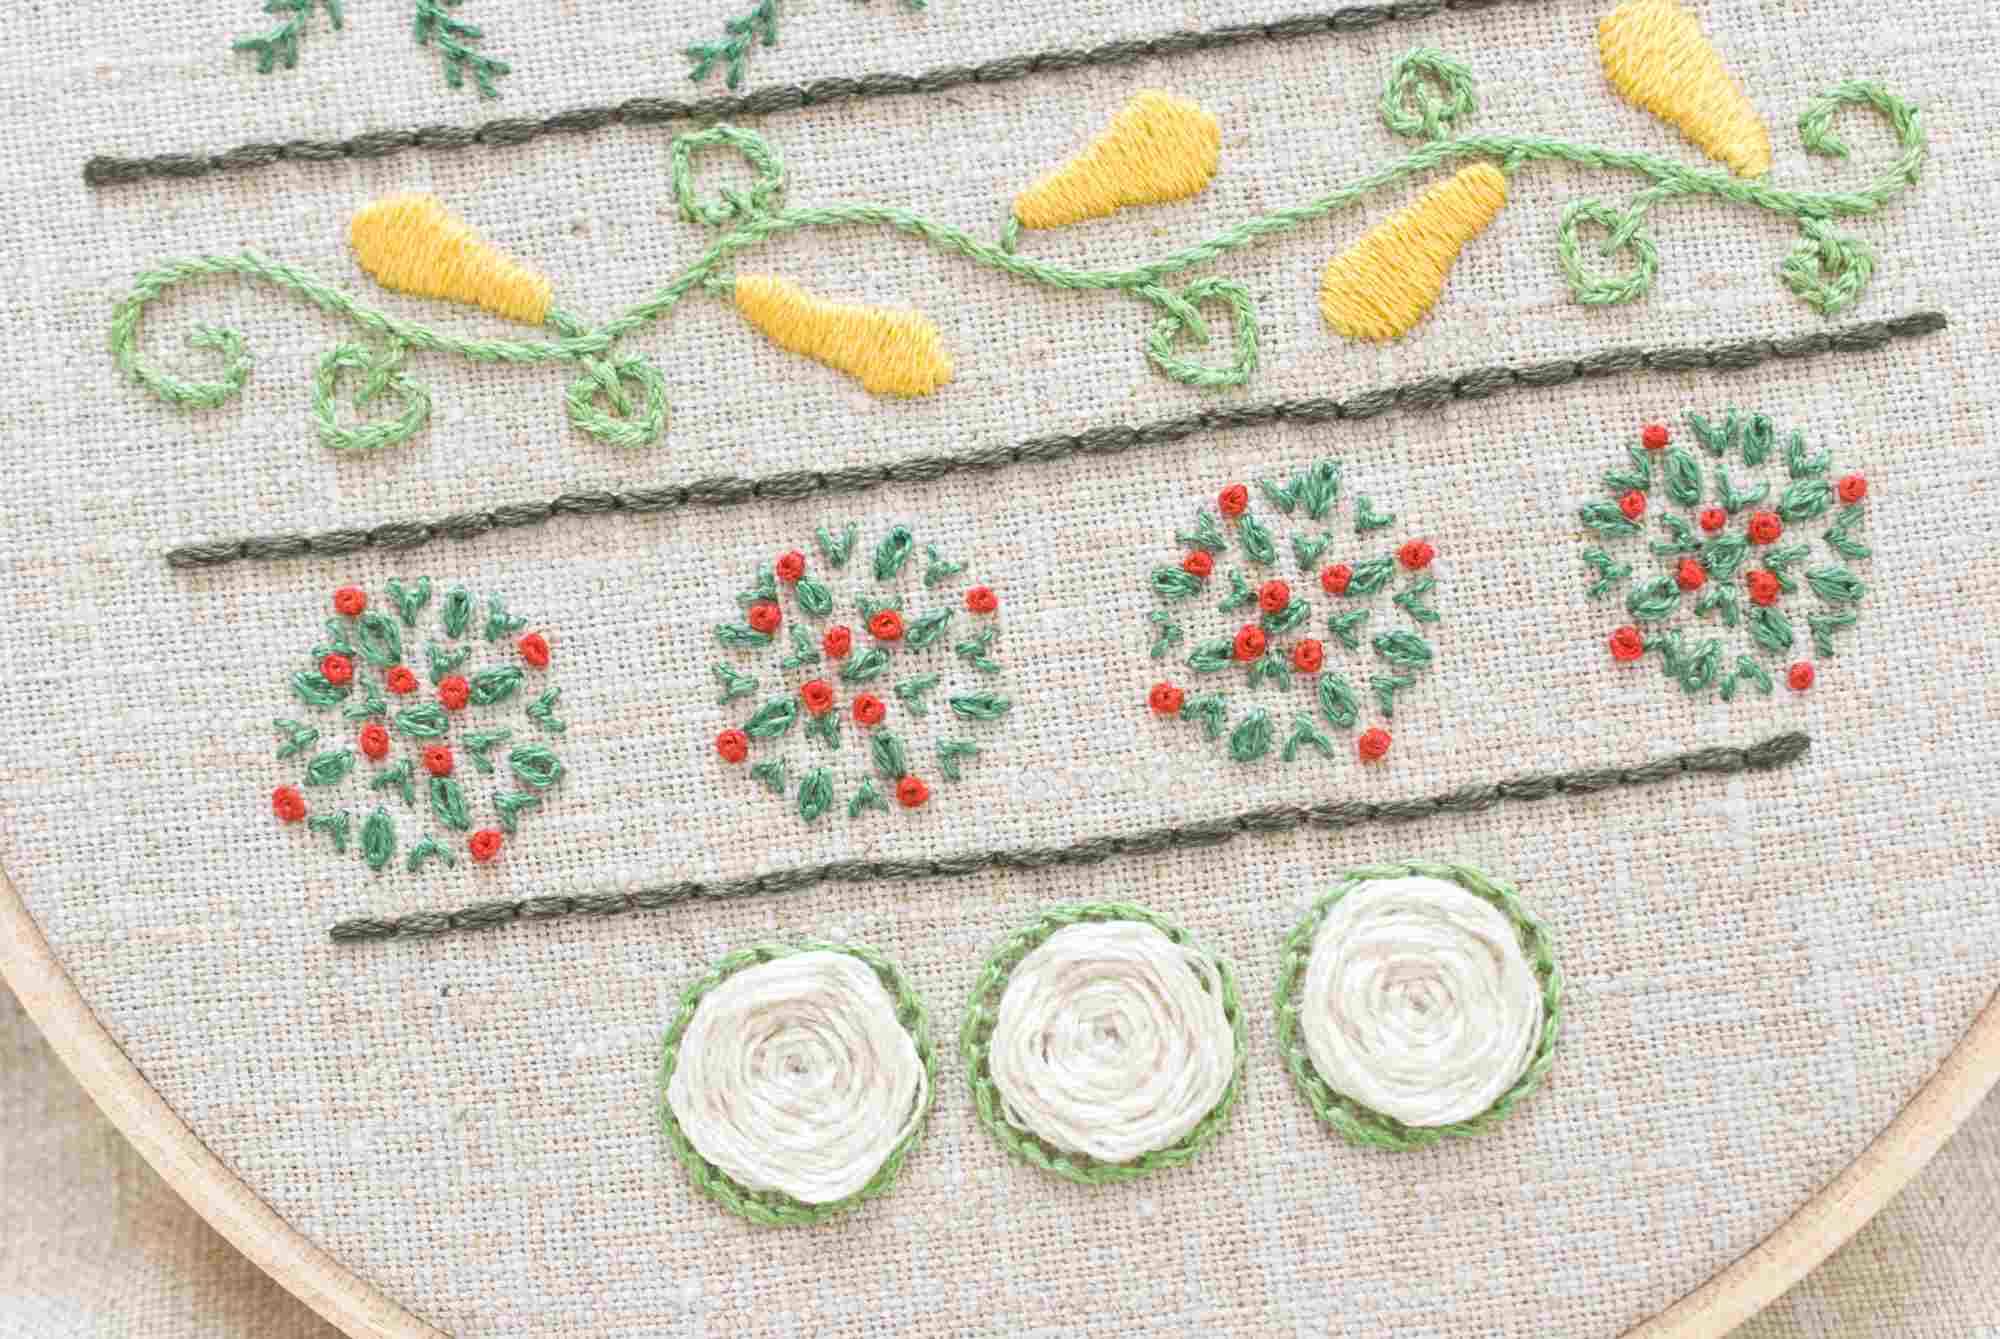 vegetable garden embroidery sampler pattern - Embroidery Garden